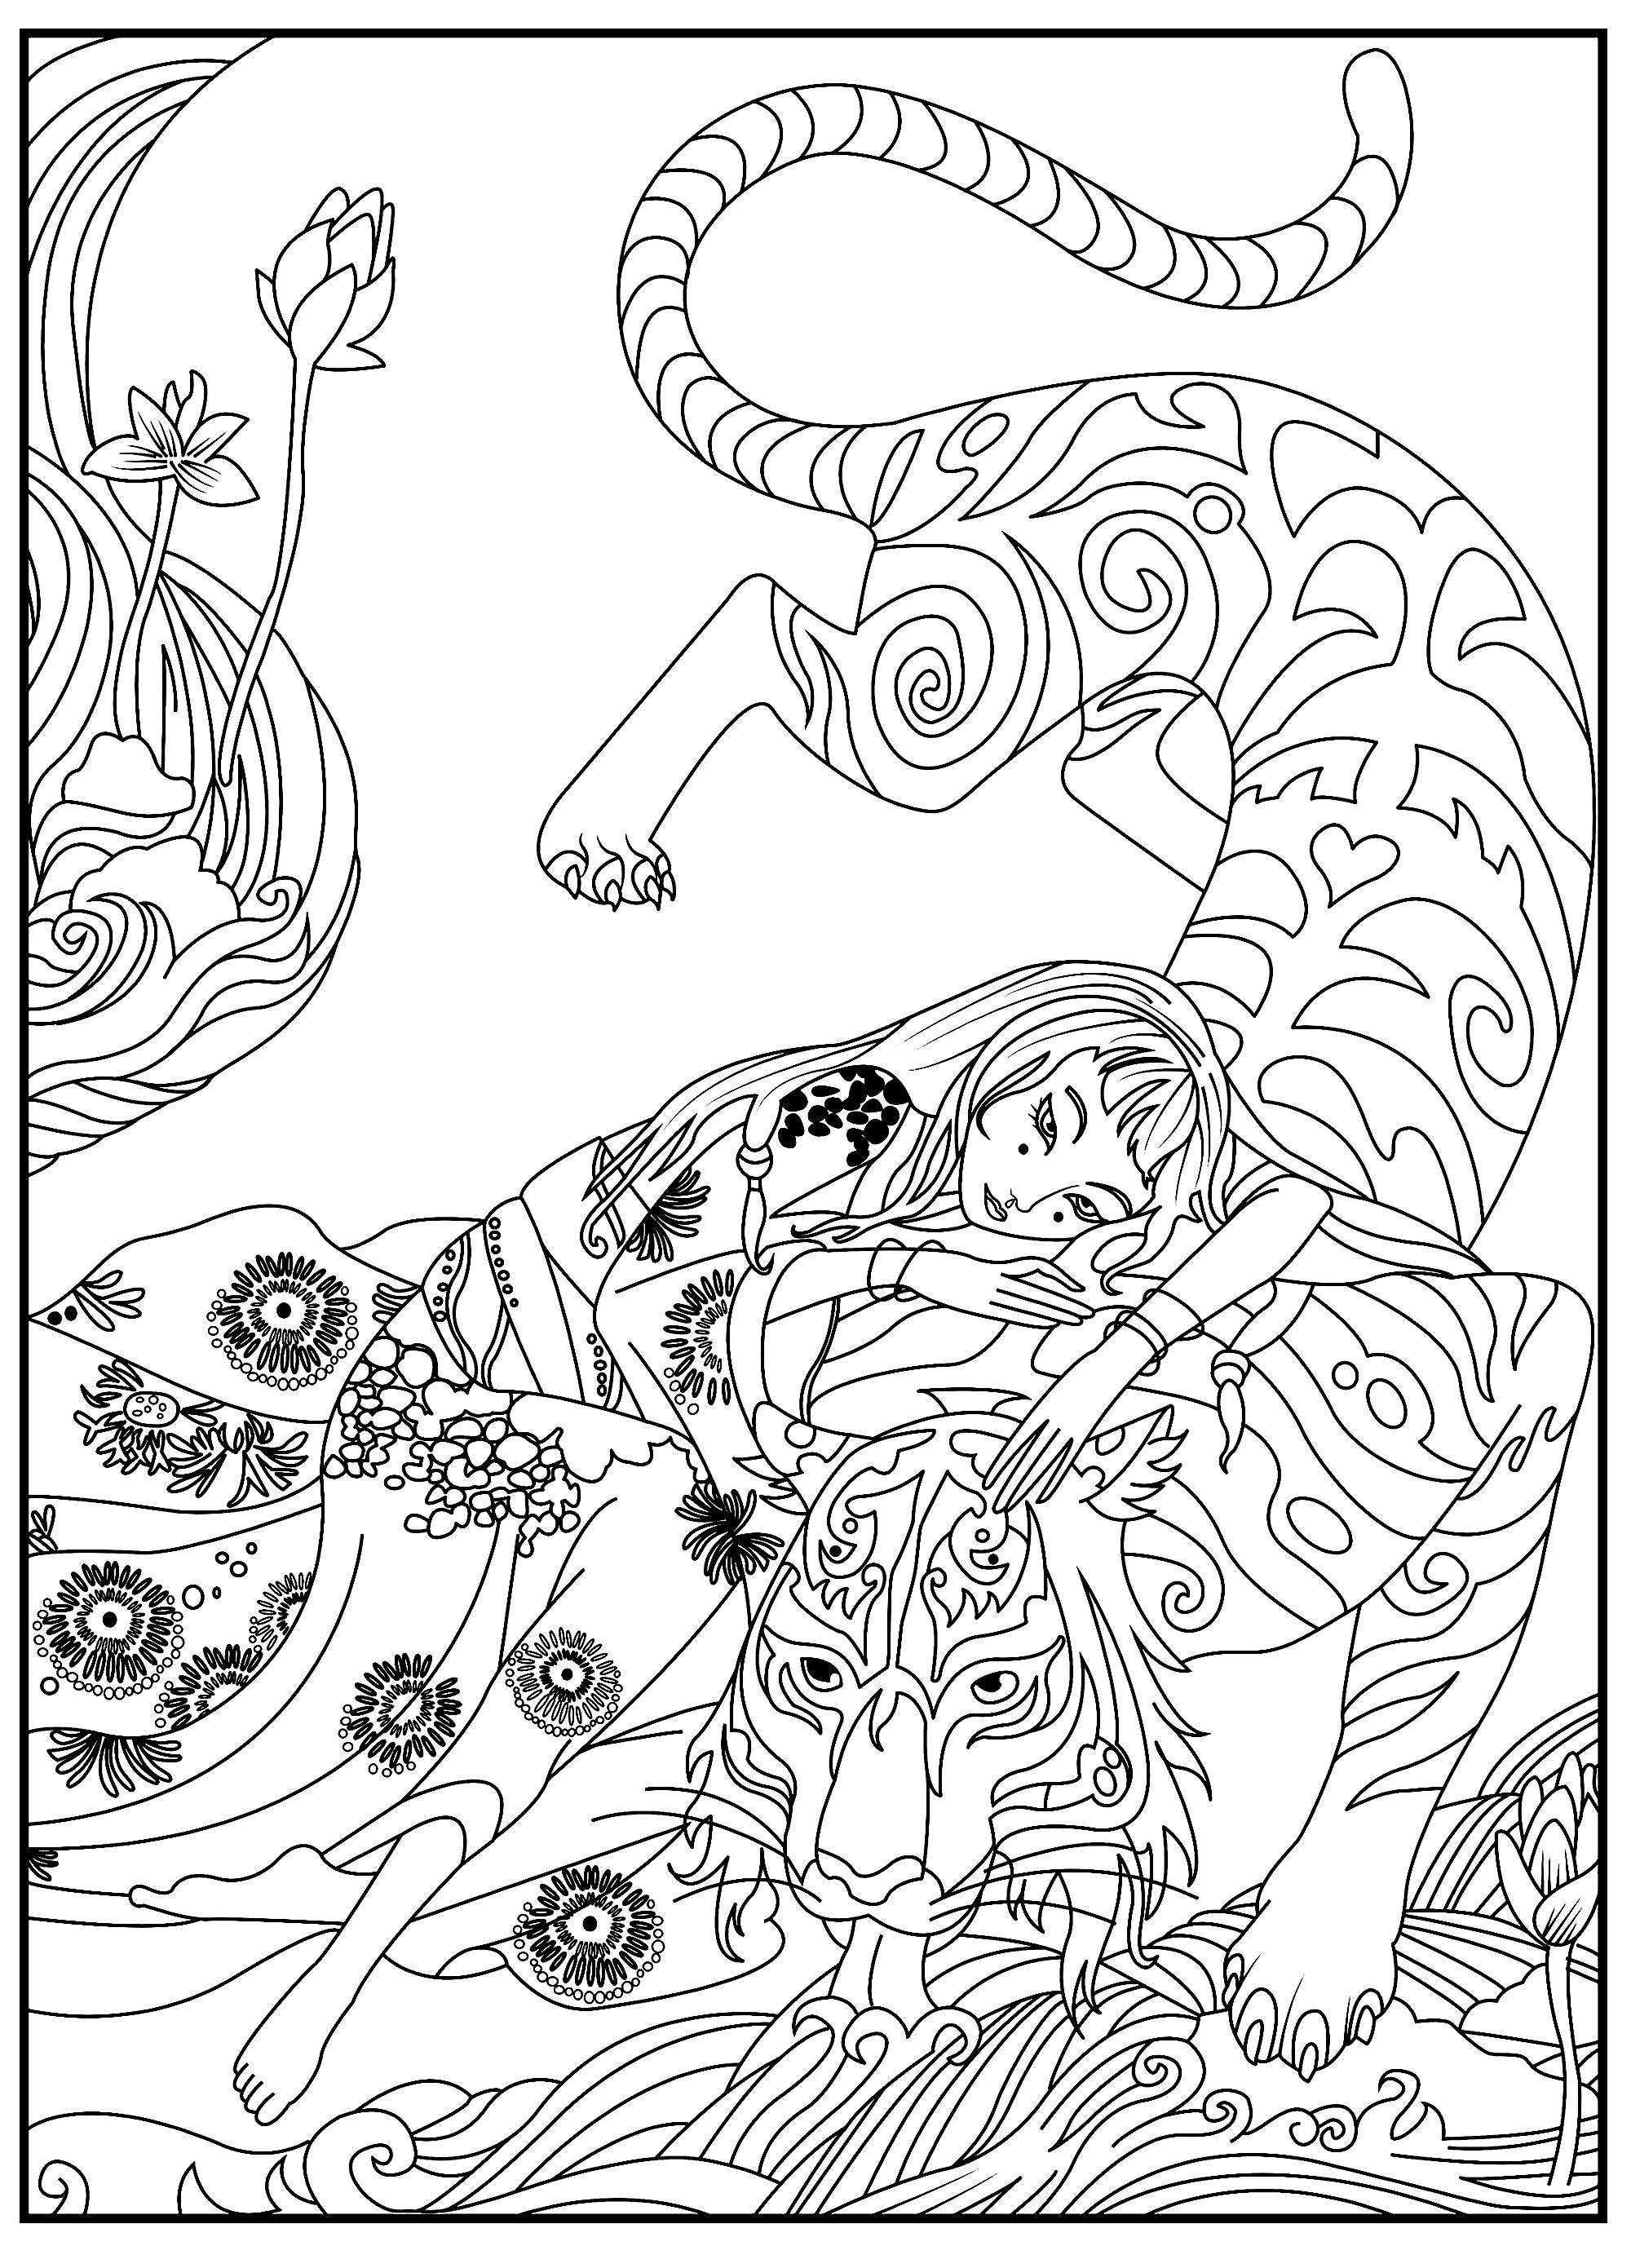 Tigers coloring page with few details for kids